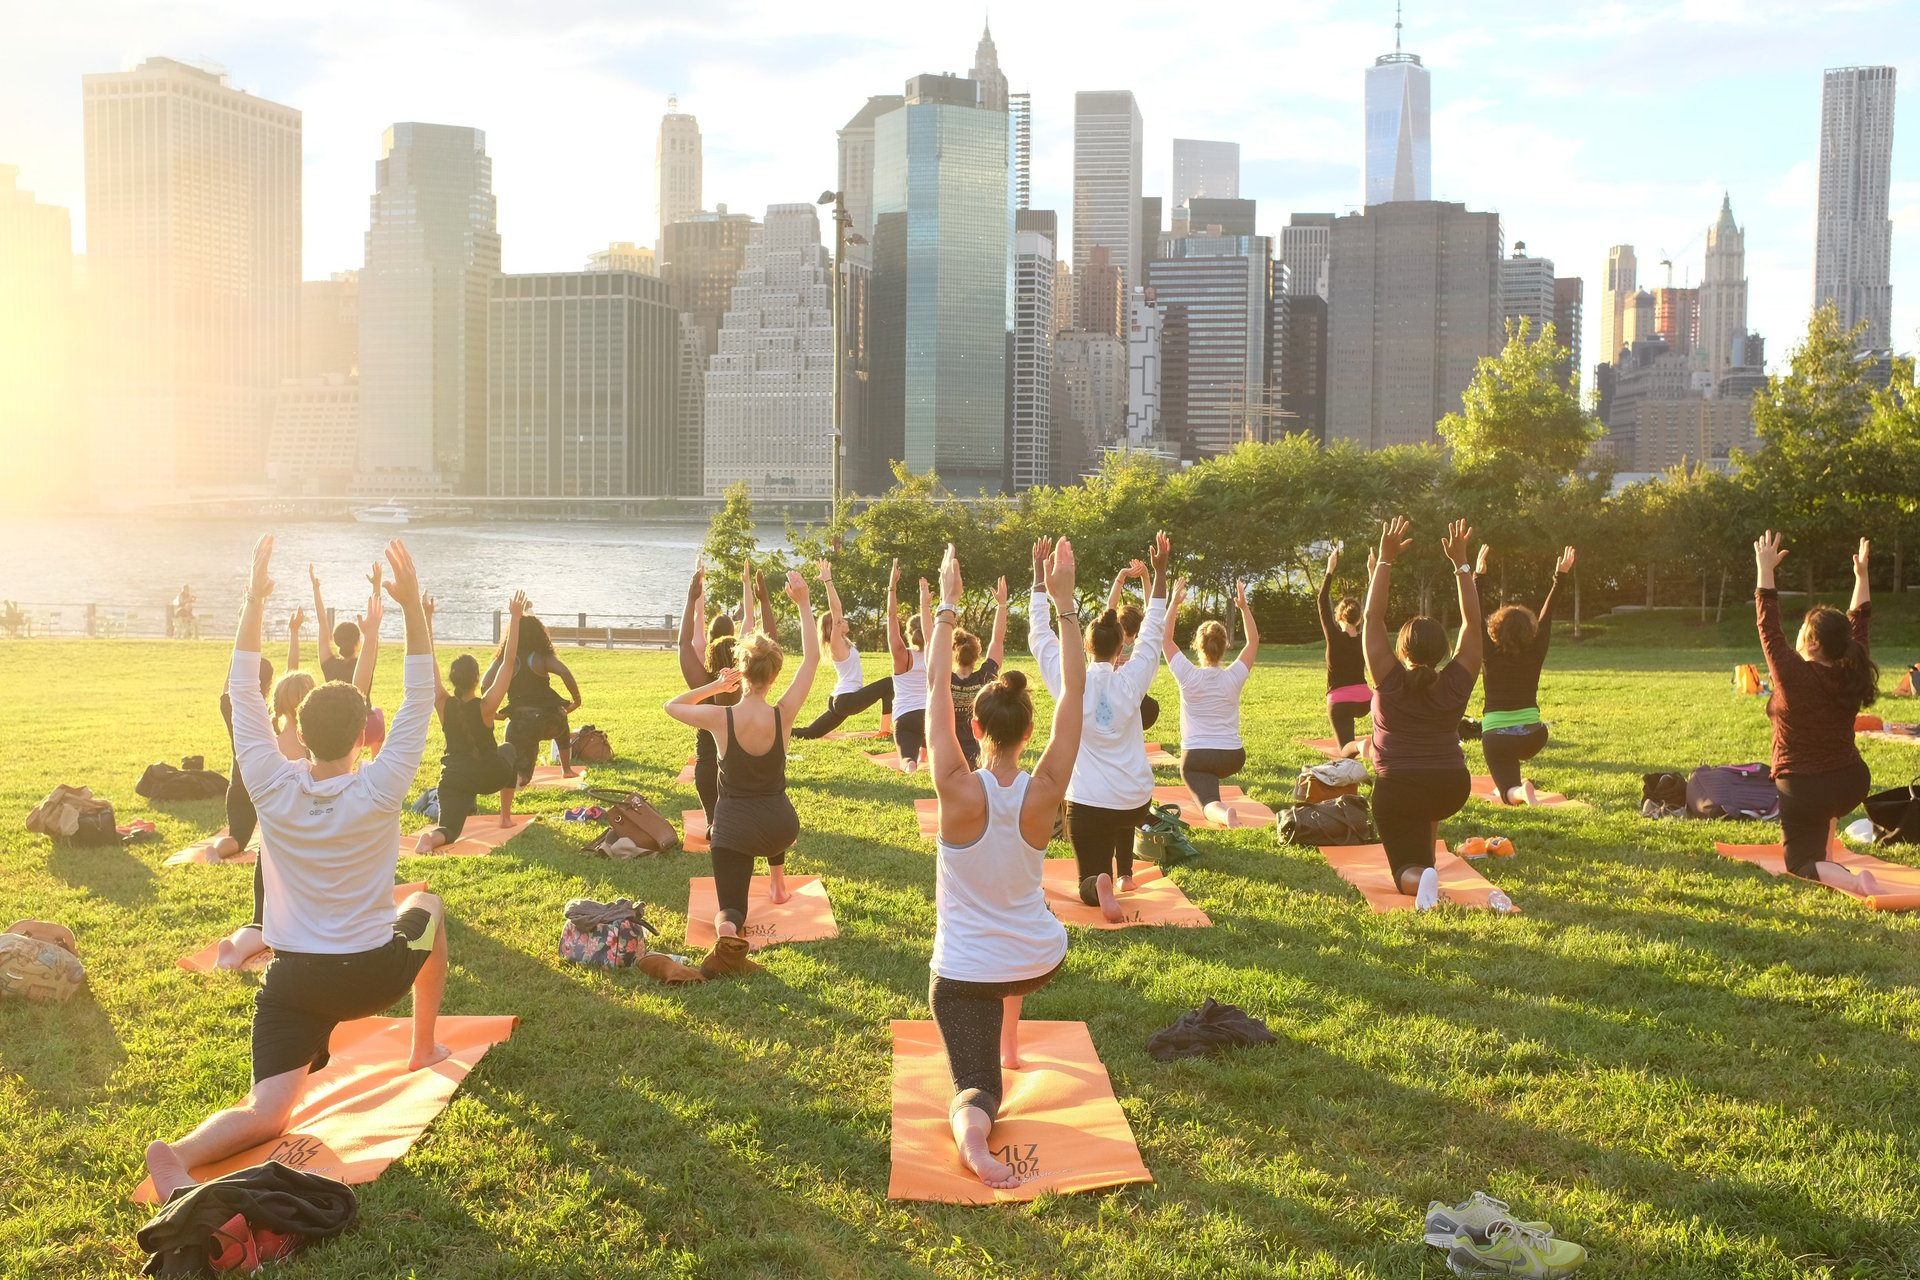 Waterfront Workouts in New York 2020 - Best Time